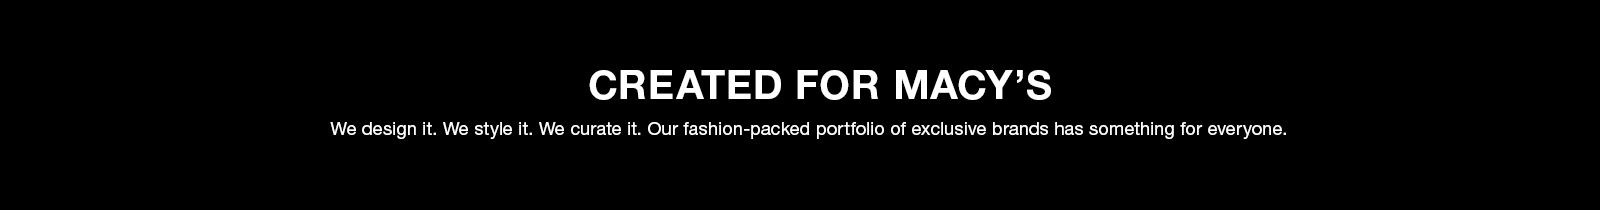 Created For Macy's, We design it, We style it, We curate it, Our fashion-packed portfolio of exclusive brands has something for everyone